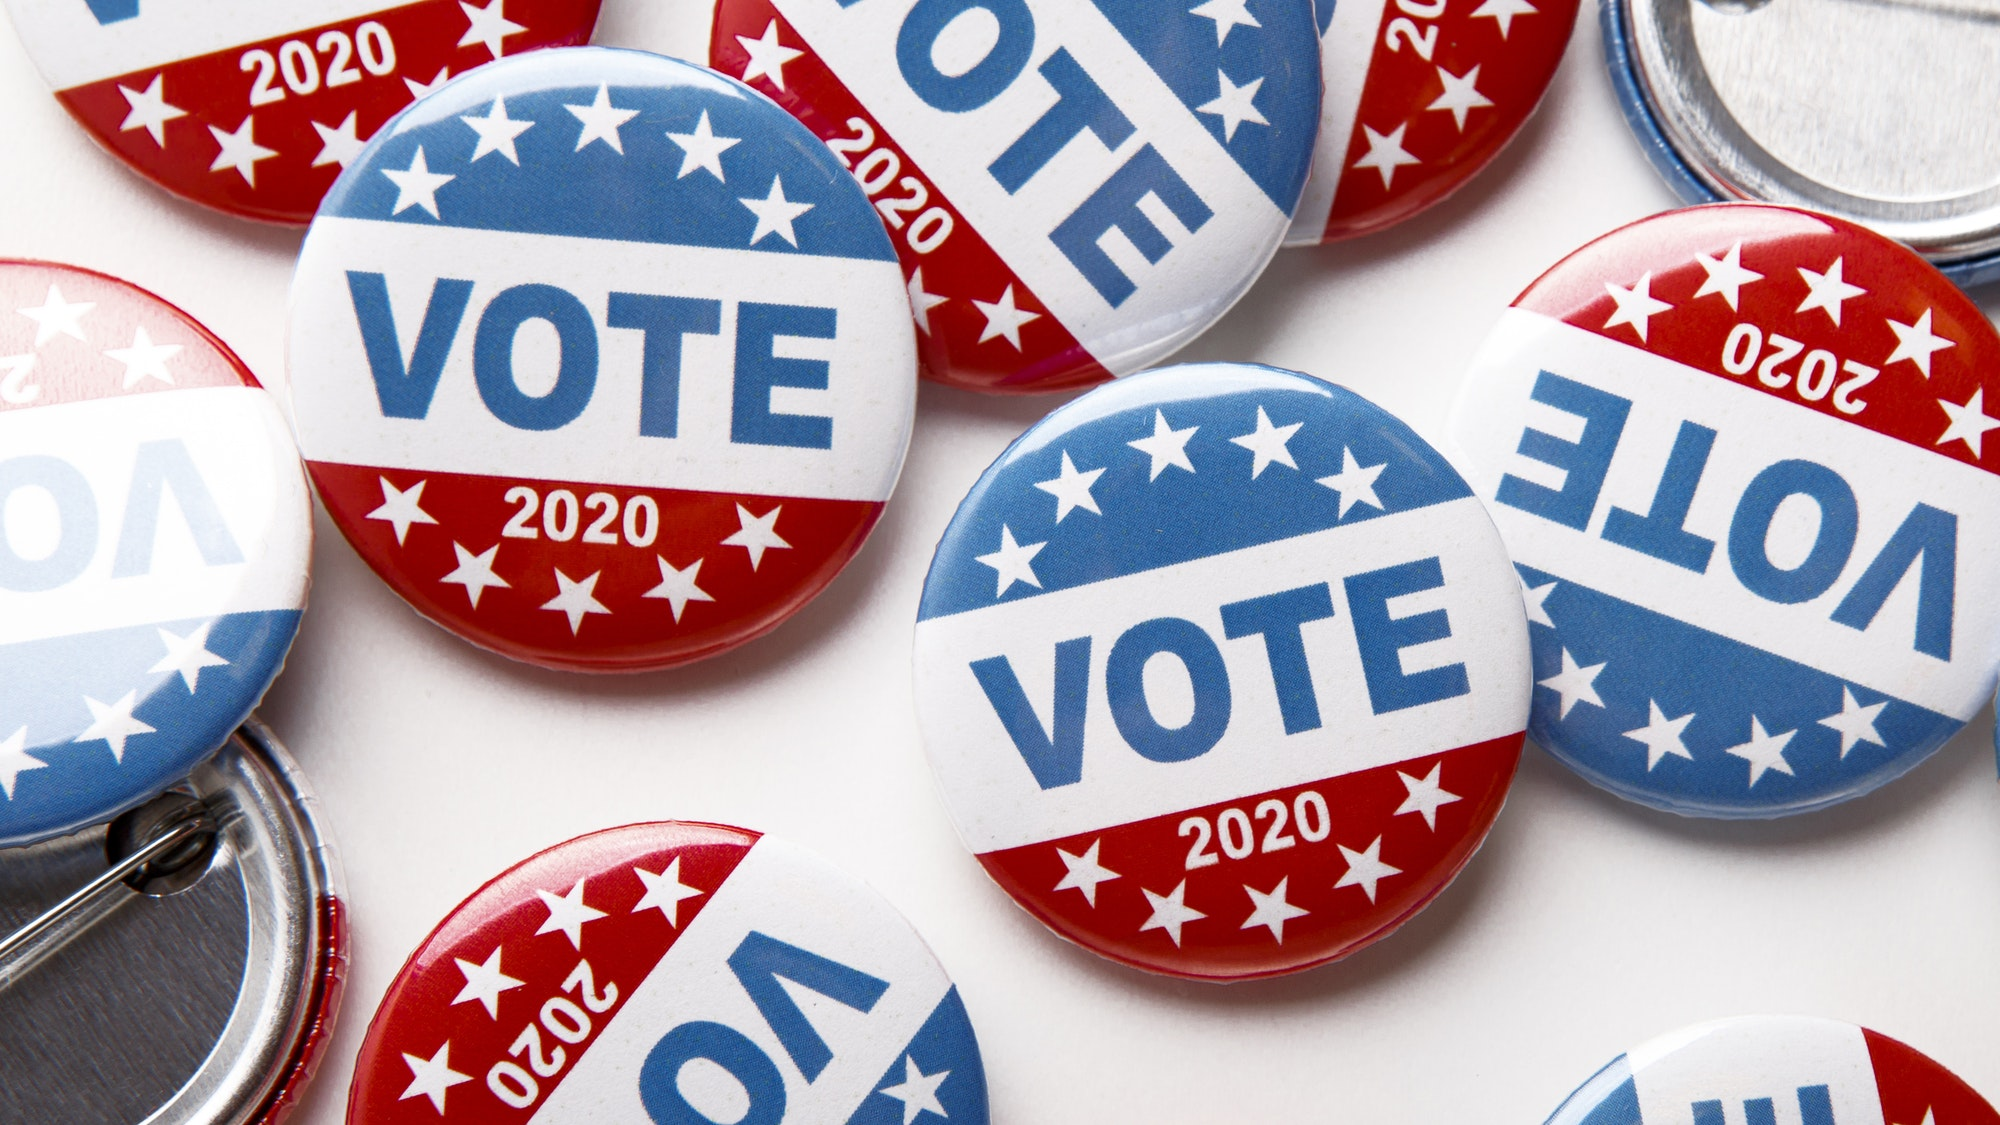 United States of America president voting 2020. Election voting buttons